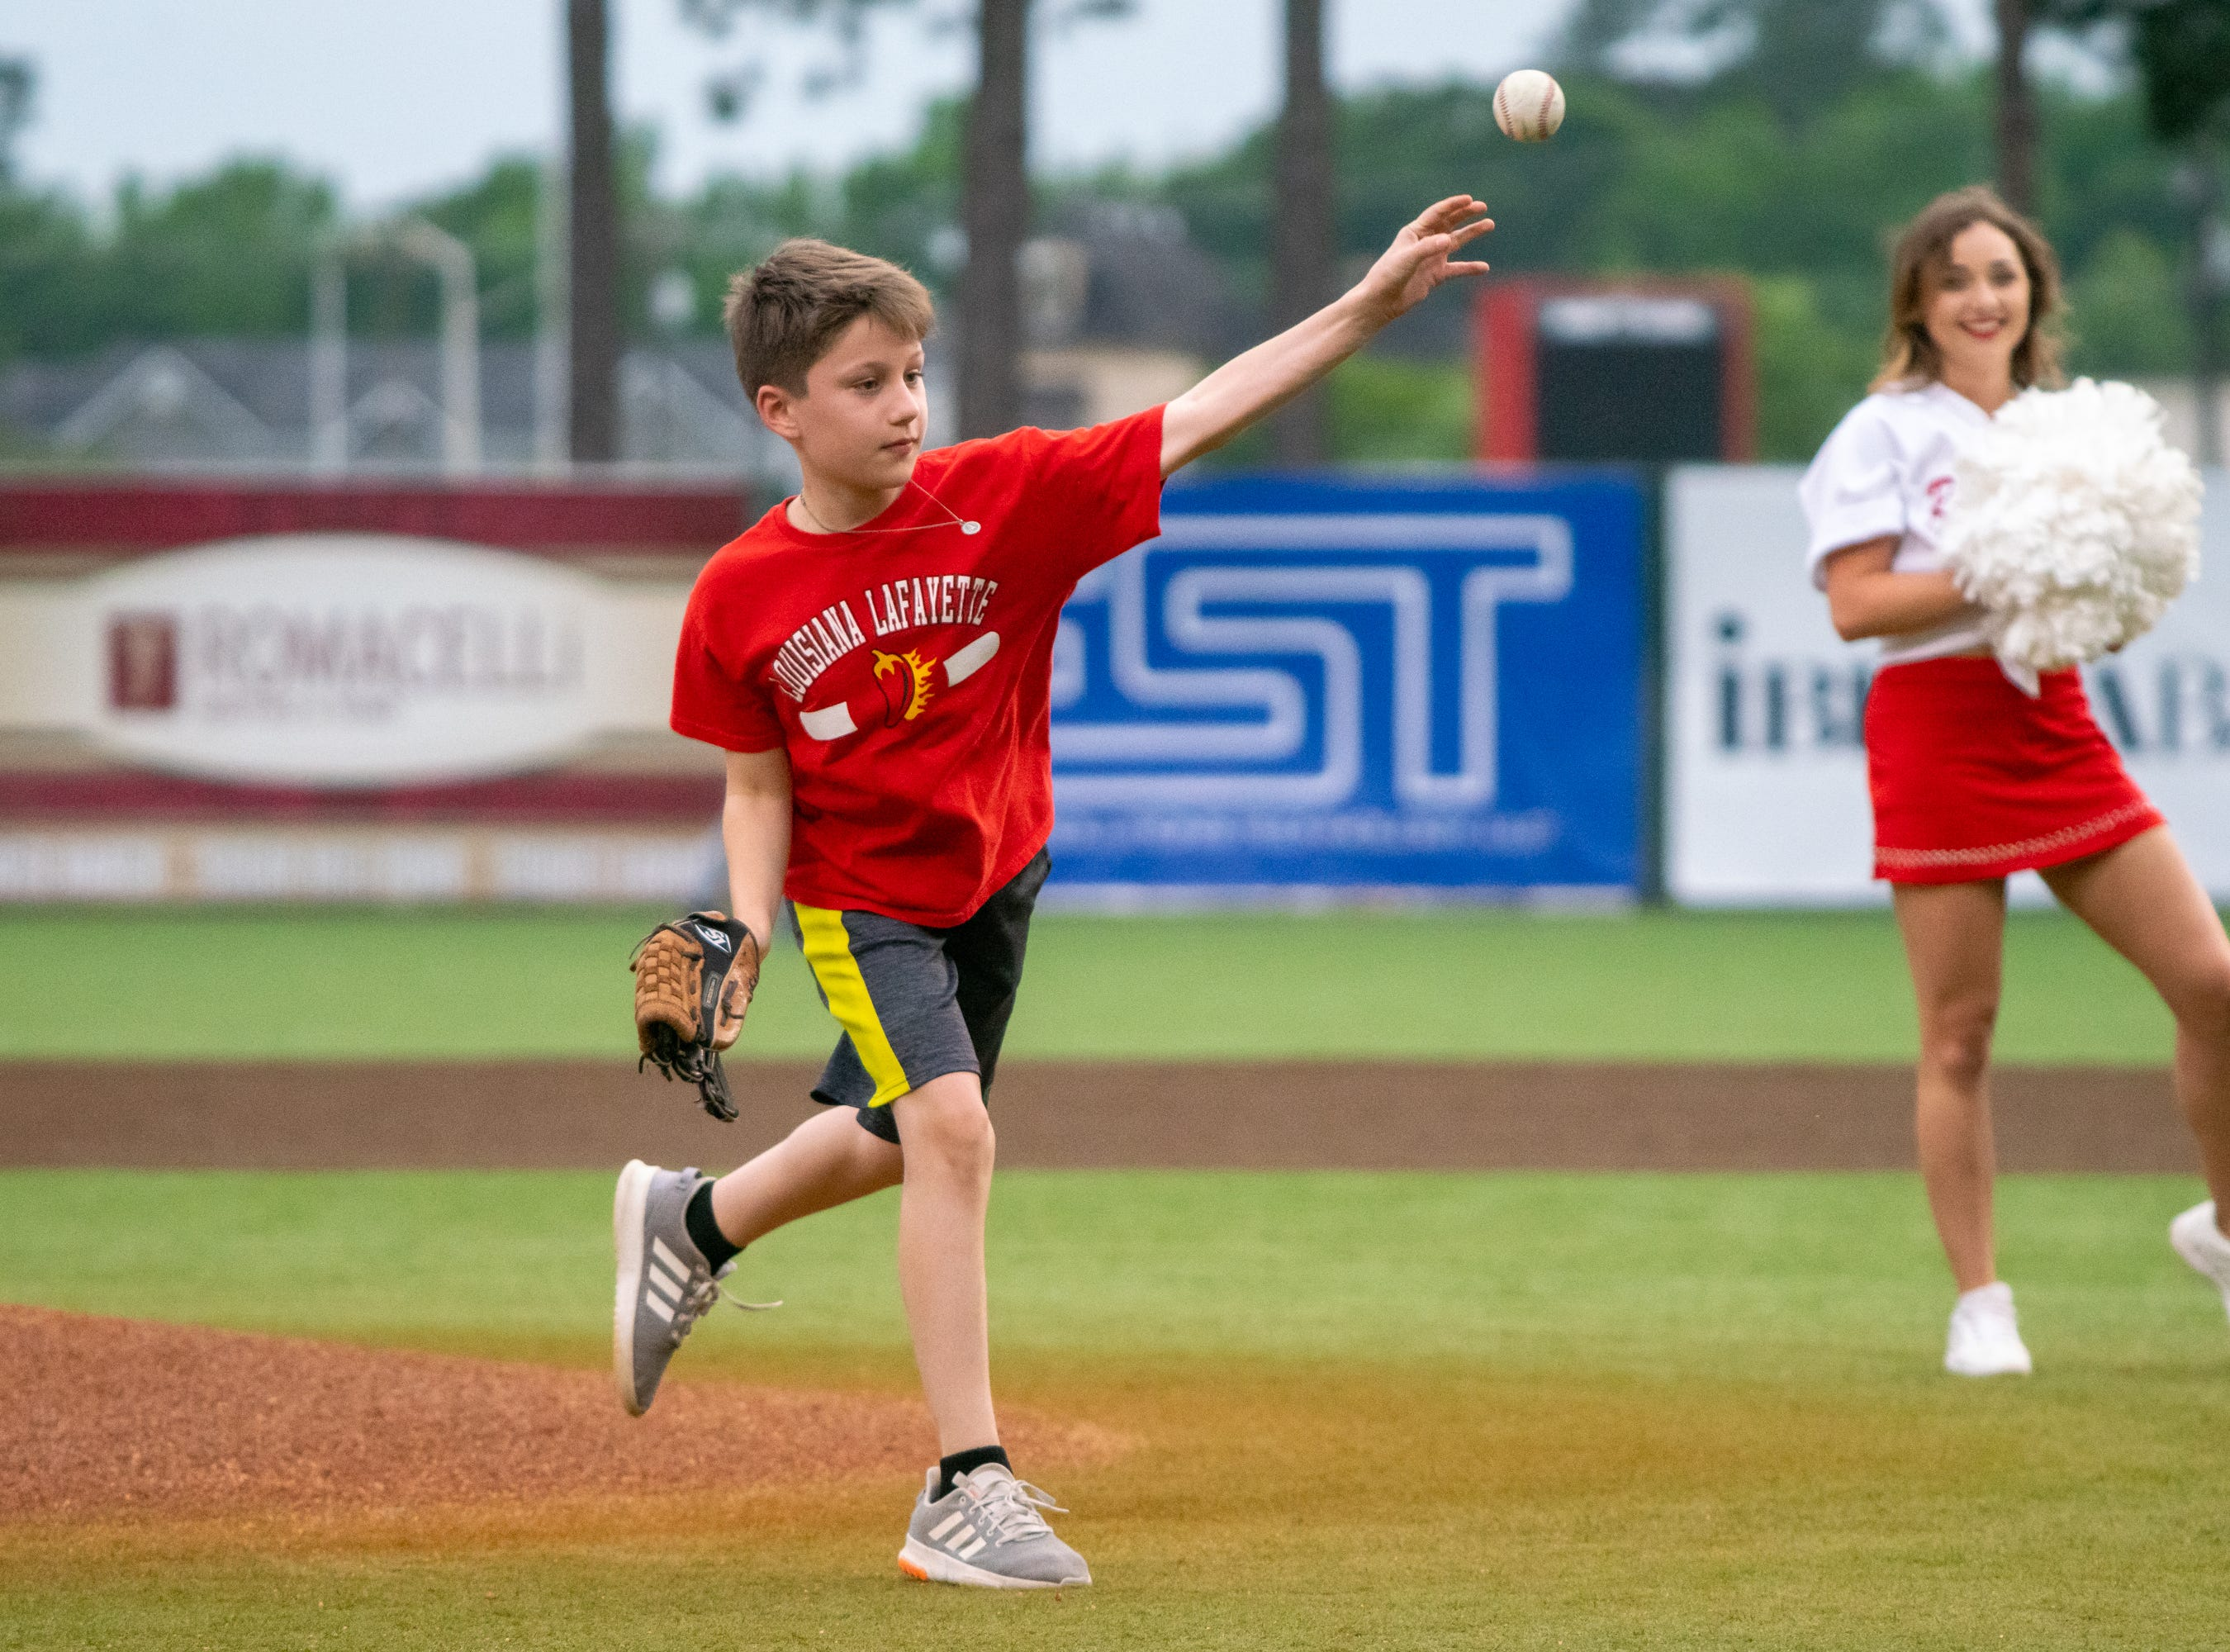 """The first pitch is thrown before the game as the Ragin' Cajuns take on the South Alabama Jaguars at M.L. """"Tigue"""" Moore Field on Friday, April 4, 2019."""